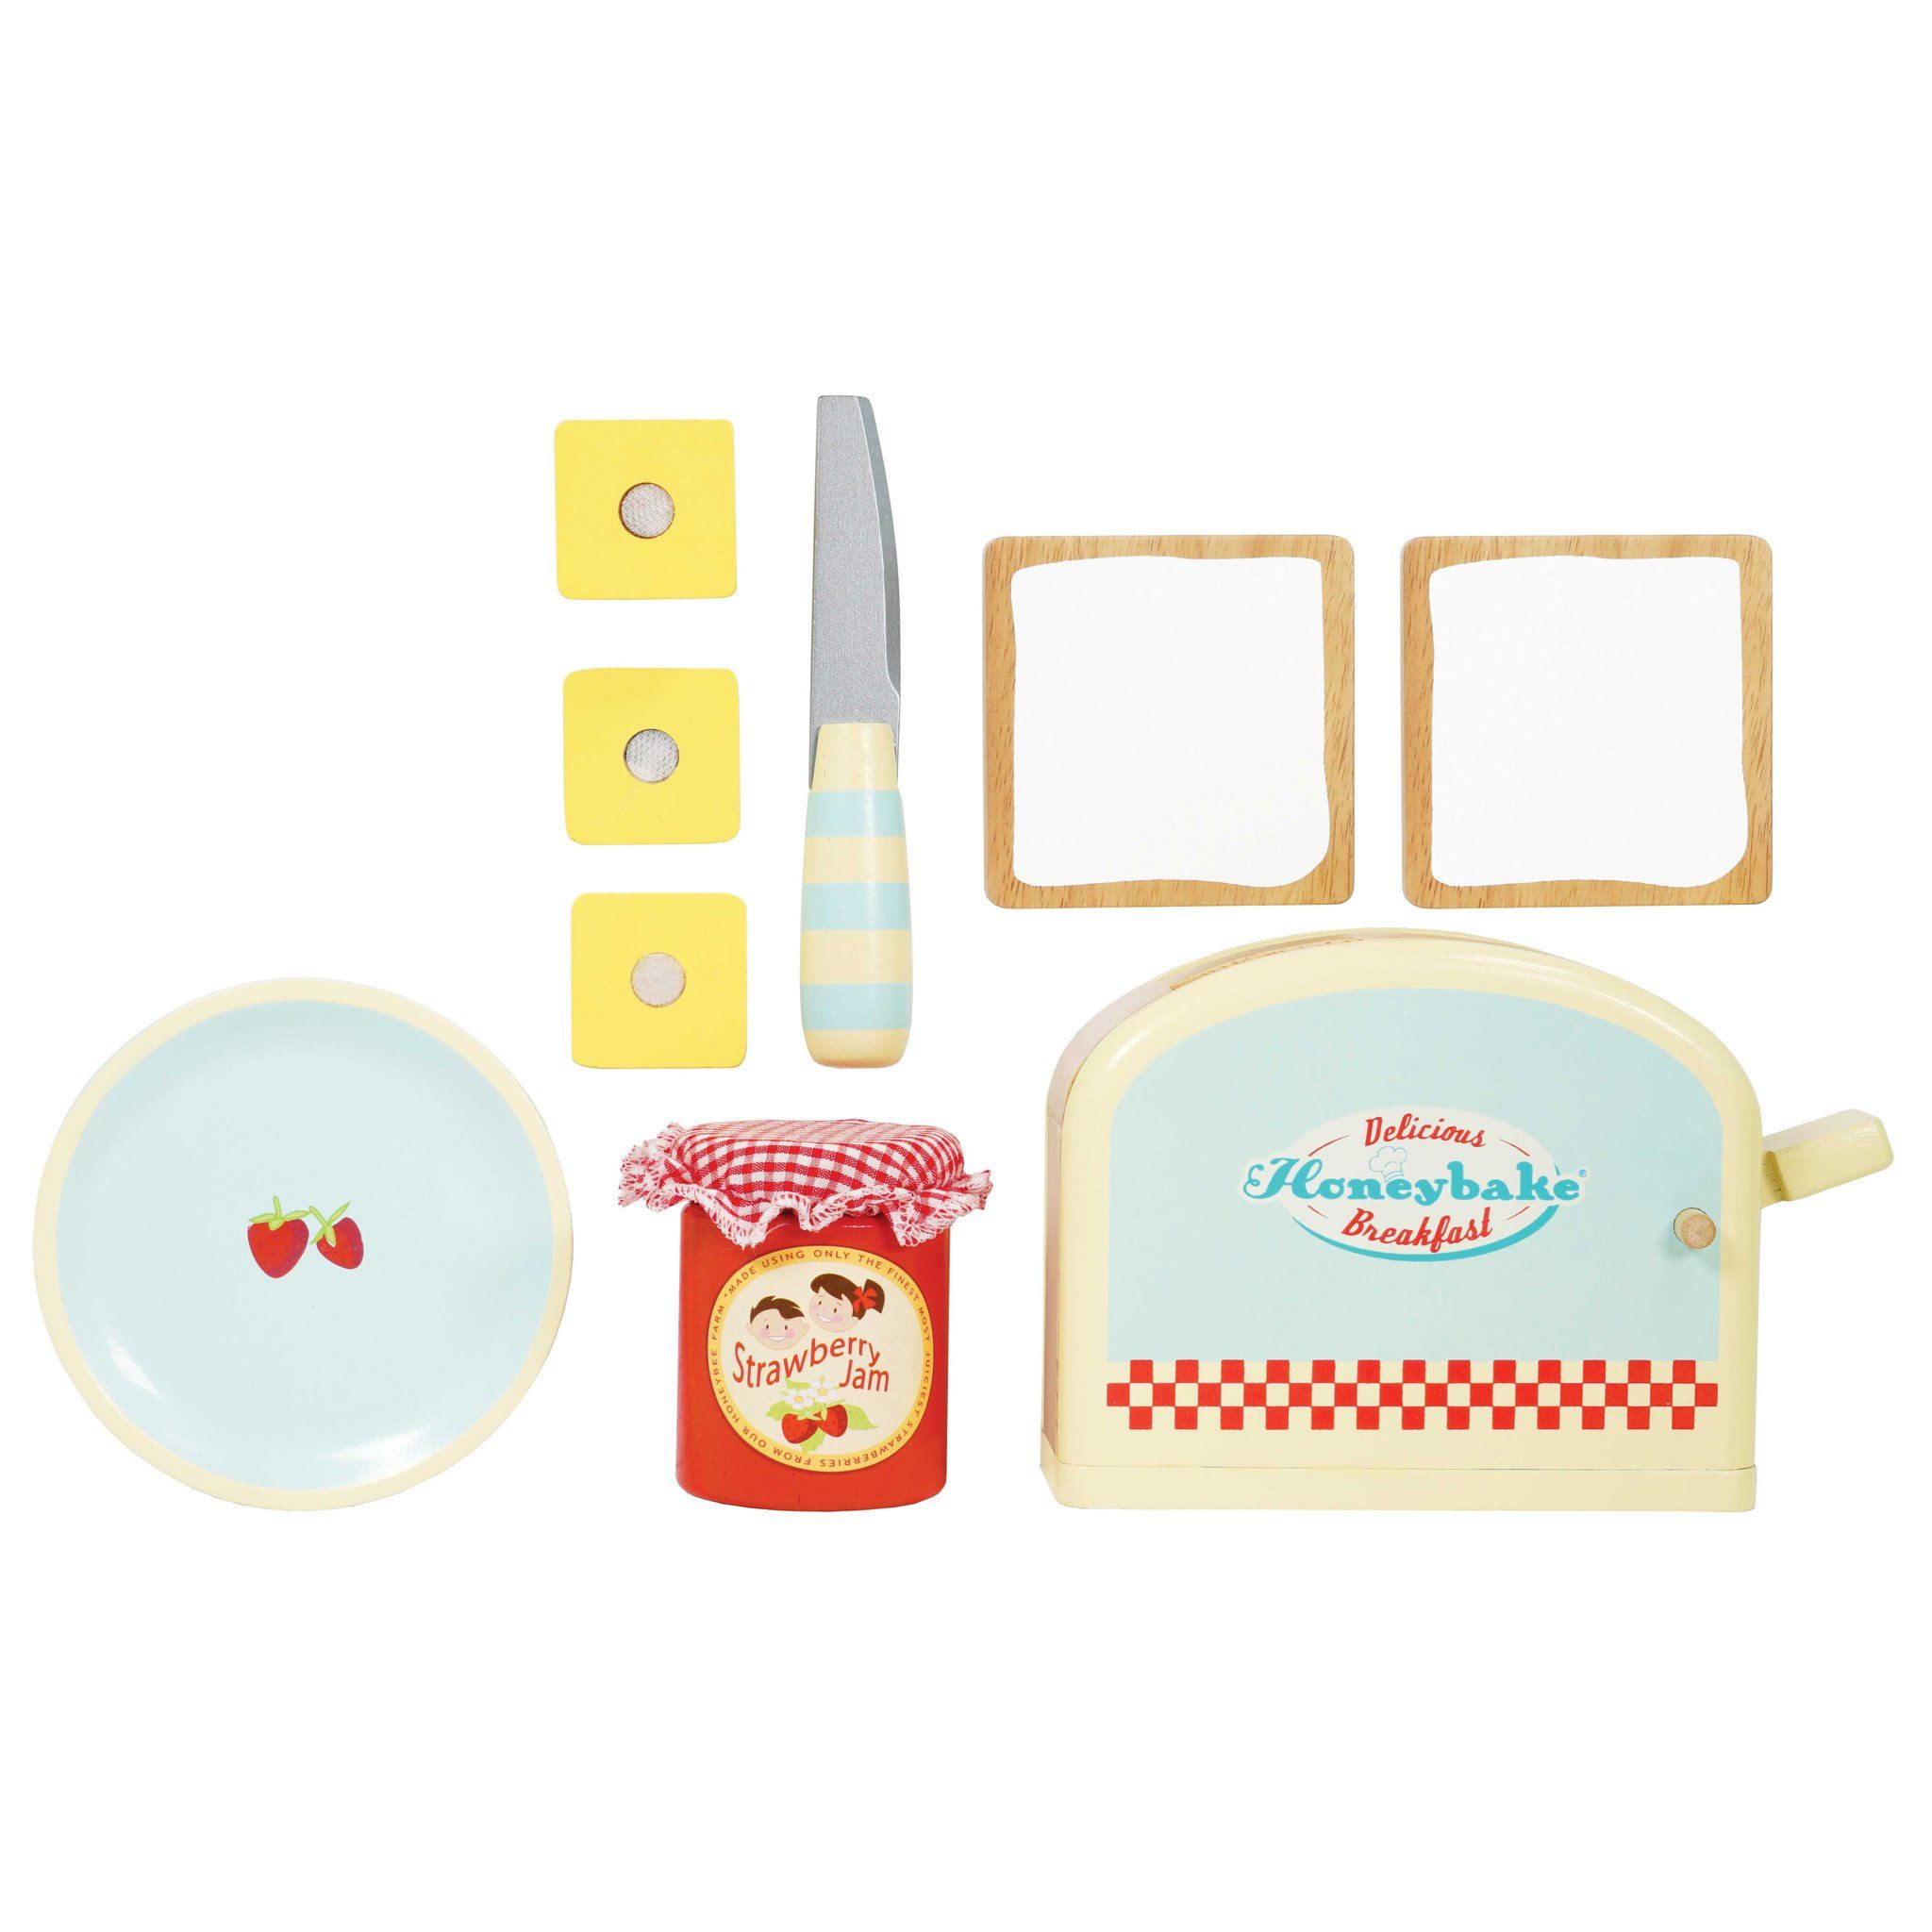 Toaster Breakfast Set by Le Toy Van